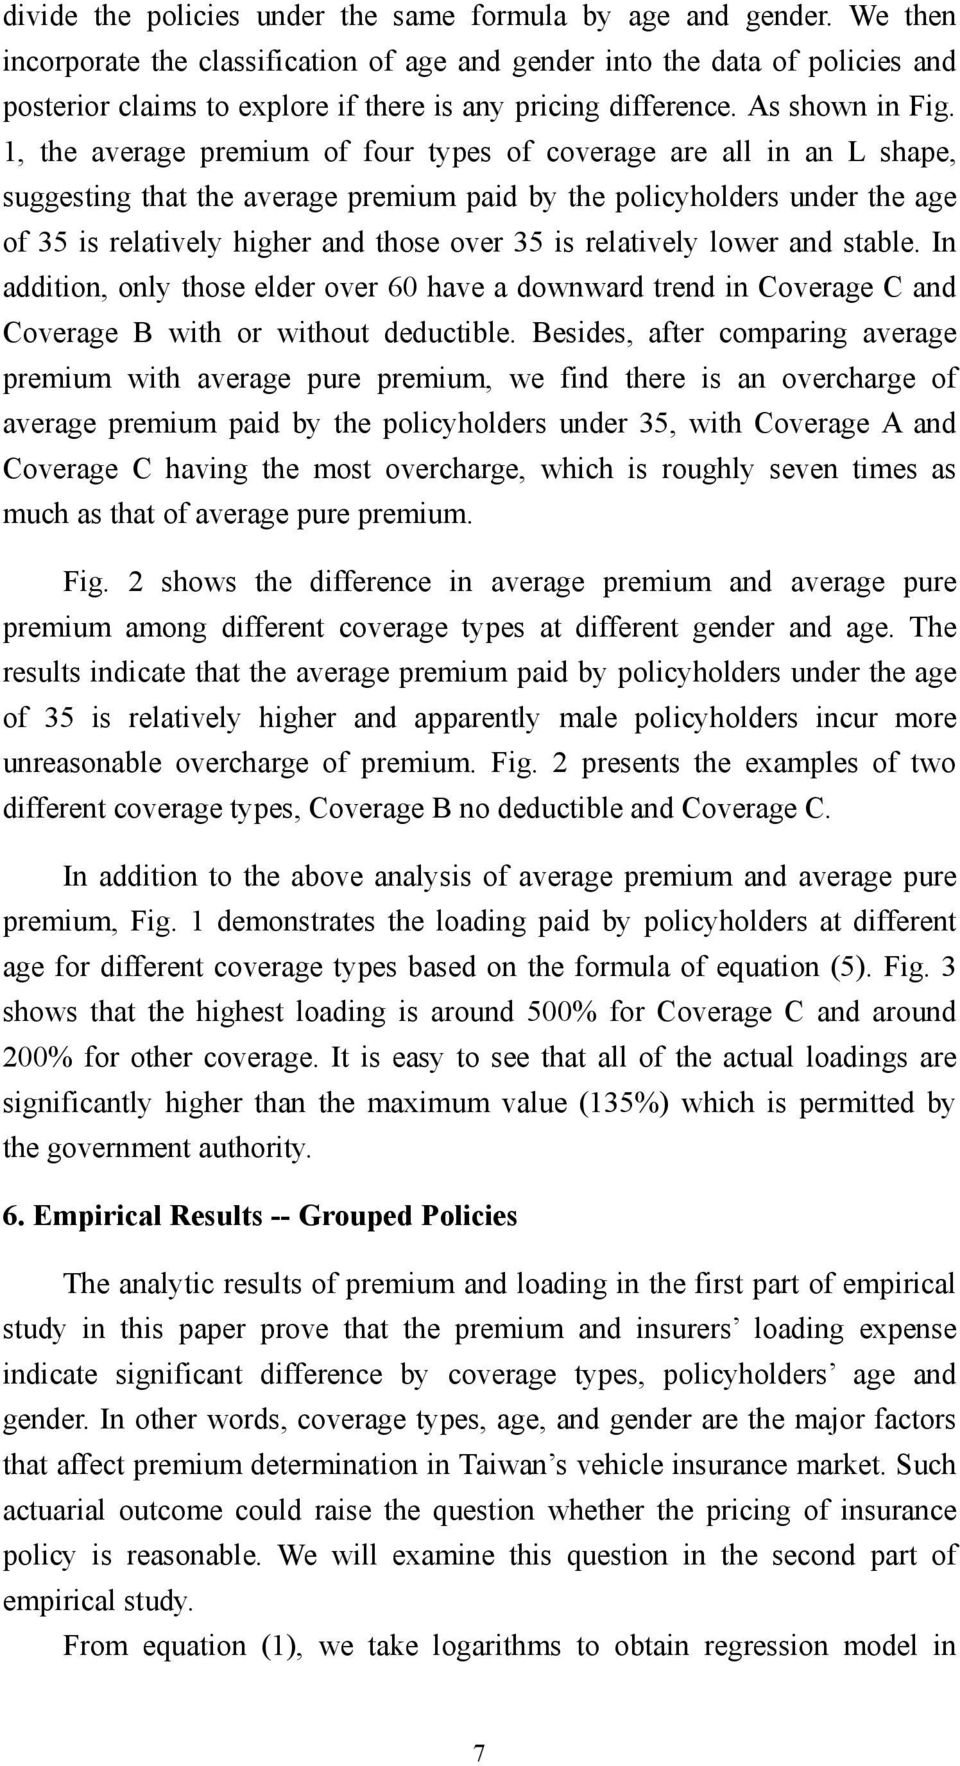 1, the average premium of four types of coverage are all in an L shape, suggesting that the average premium paid by the policyholders under the age of 35 is relatively higher and those over 35 is